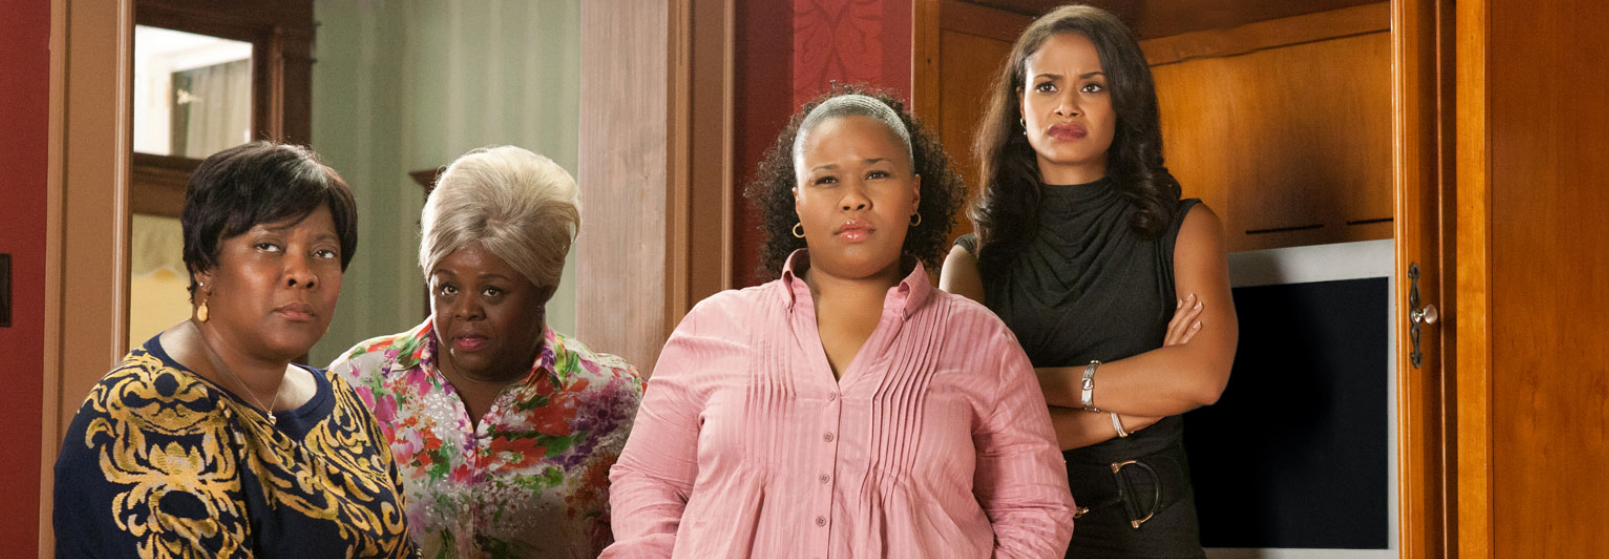 Madea?s Big Happy Family 2011movie